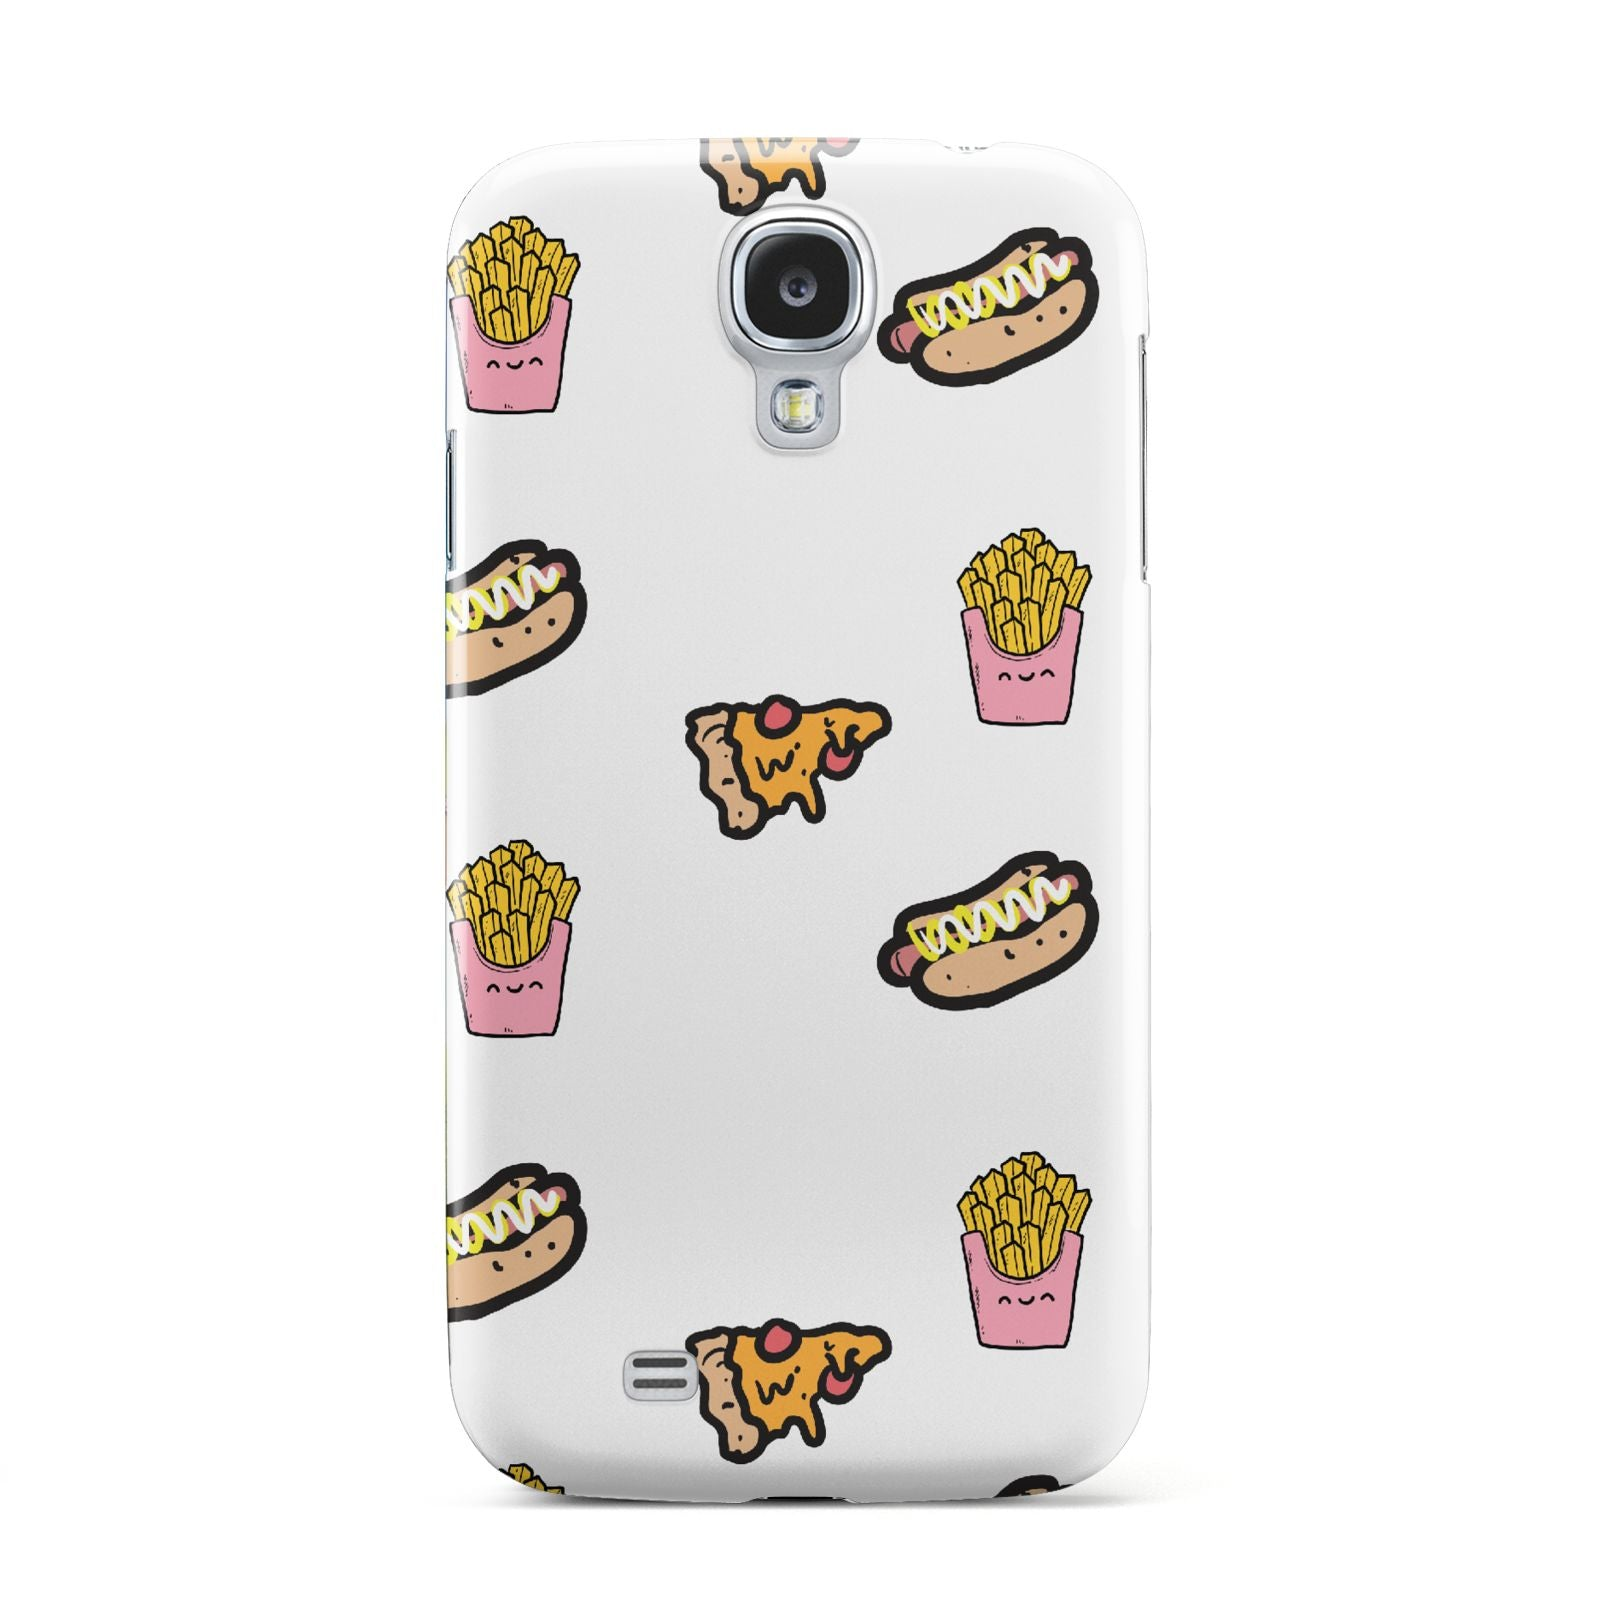 Fries Pizza Hot Dog Samsung Galaxy S4 Case